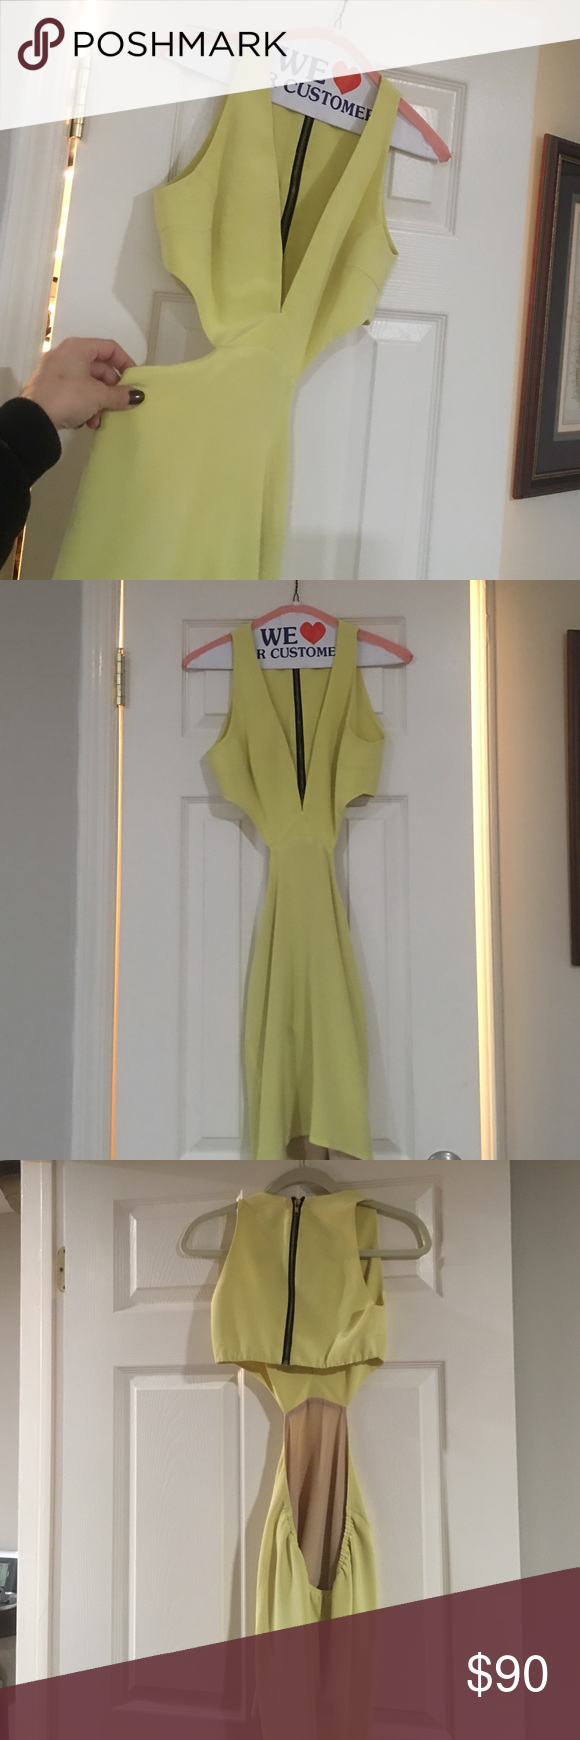 Naven cut out dress with low cut plunge front 100% silk exterior yellow naven dress with cut out sides and plunge front. Mid back open. Excellent condition! Naven Dresses Mini